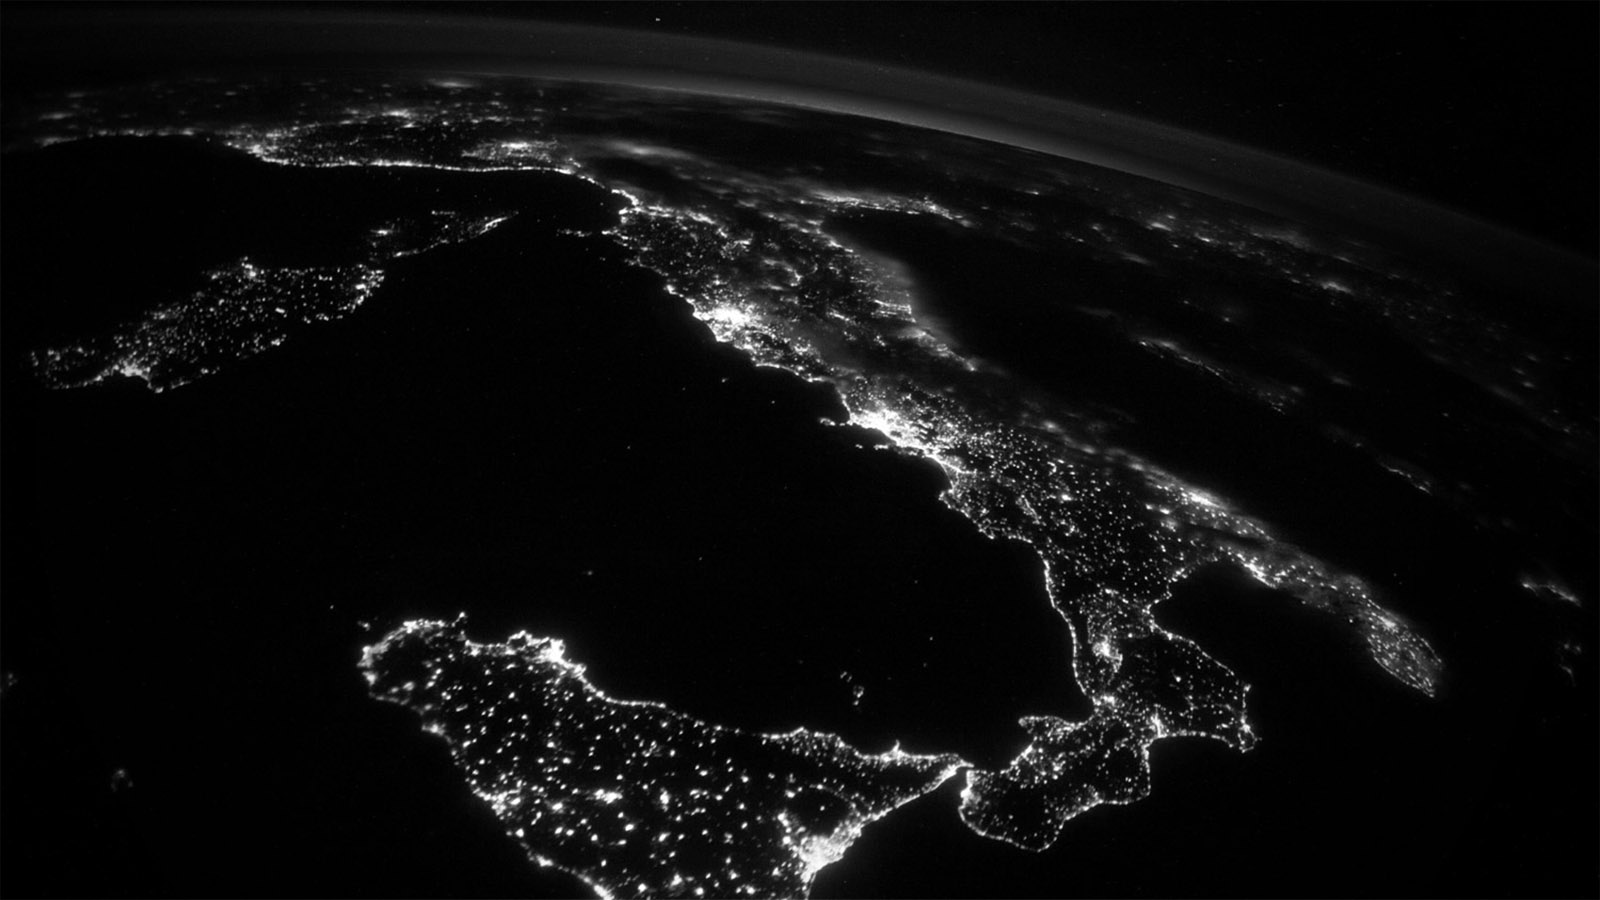 The view of Italy from the International Space Station (image courtesy NASA)